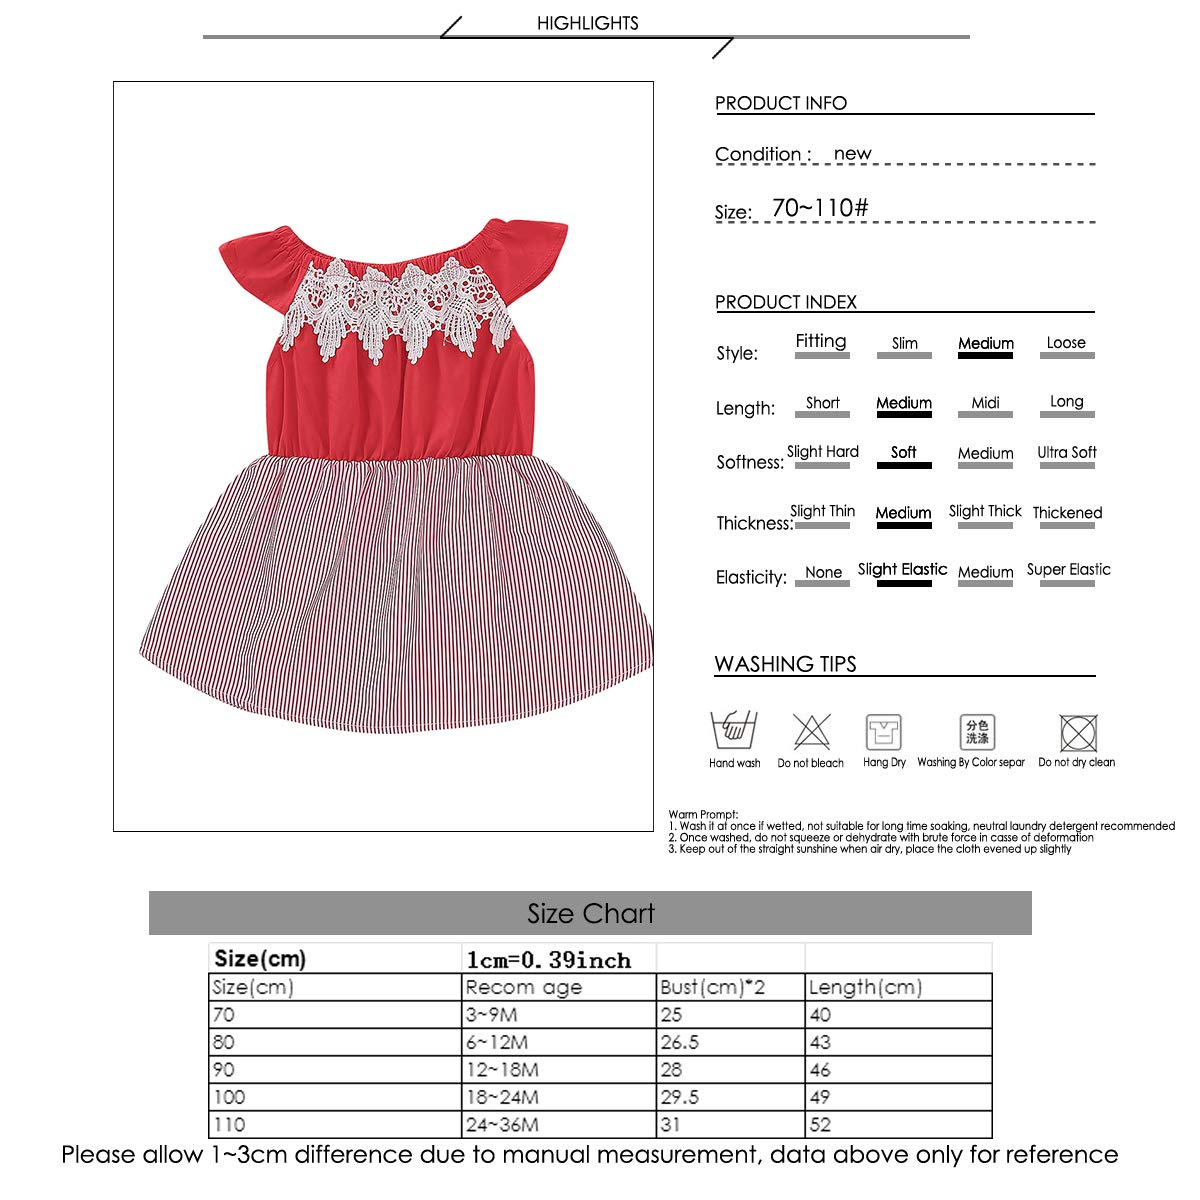 Baby Toddler Girl Vertical Striped Sleeveless Dress Casual Ruffled Lace Swing Dresses Red